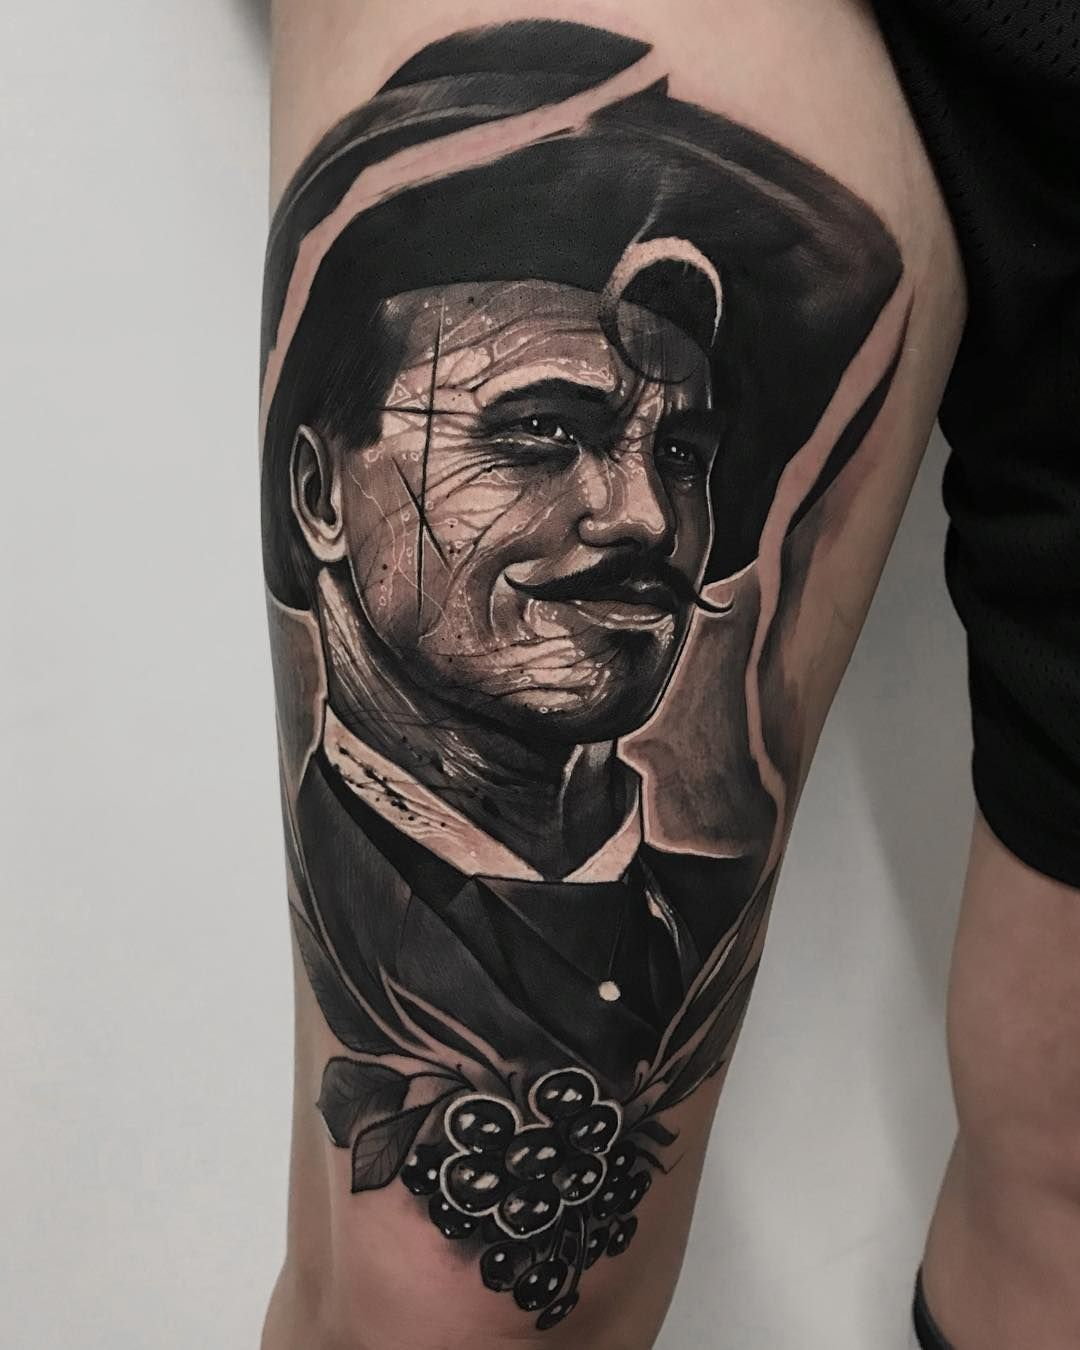 Doc Holliday Tattoo : holliday, tattoo, Huckleberry..., Holliday, ⭐️, Thankyou, Michelle, Traveling, 🇺🇸, Huckleberry, Tattoo,, Huckleberry,, Tattoos